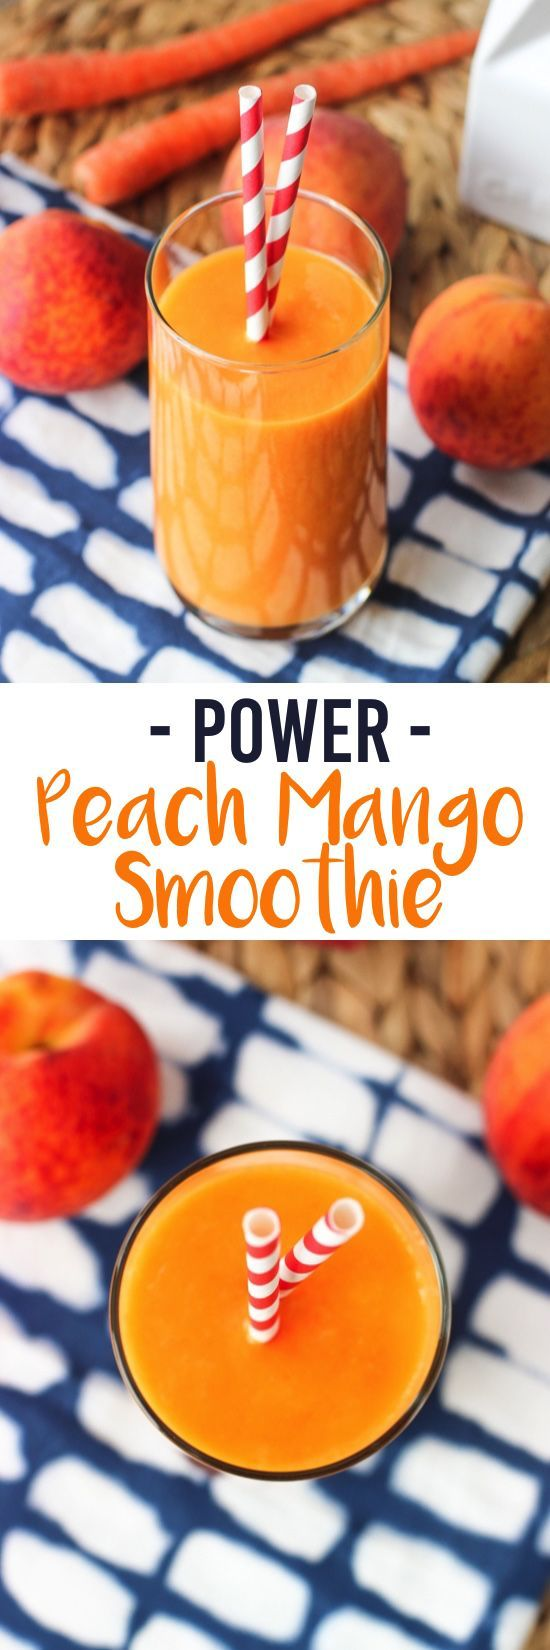 This peach mango smoothie features a sneaky vegetable and is satisfying and flavorful! The perfect healthy breakfast or pick-me-up snack.